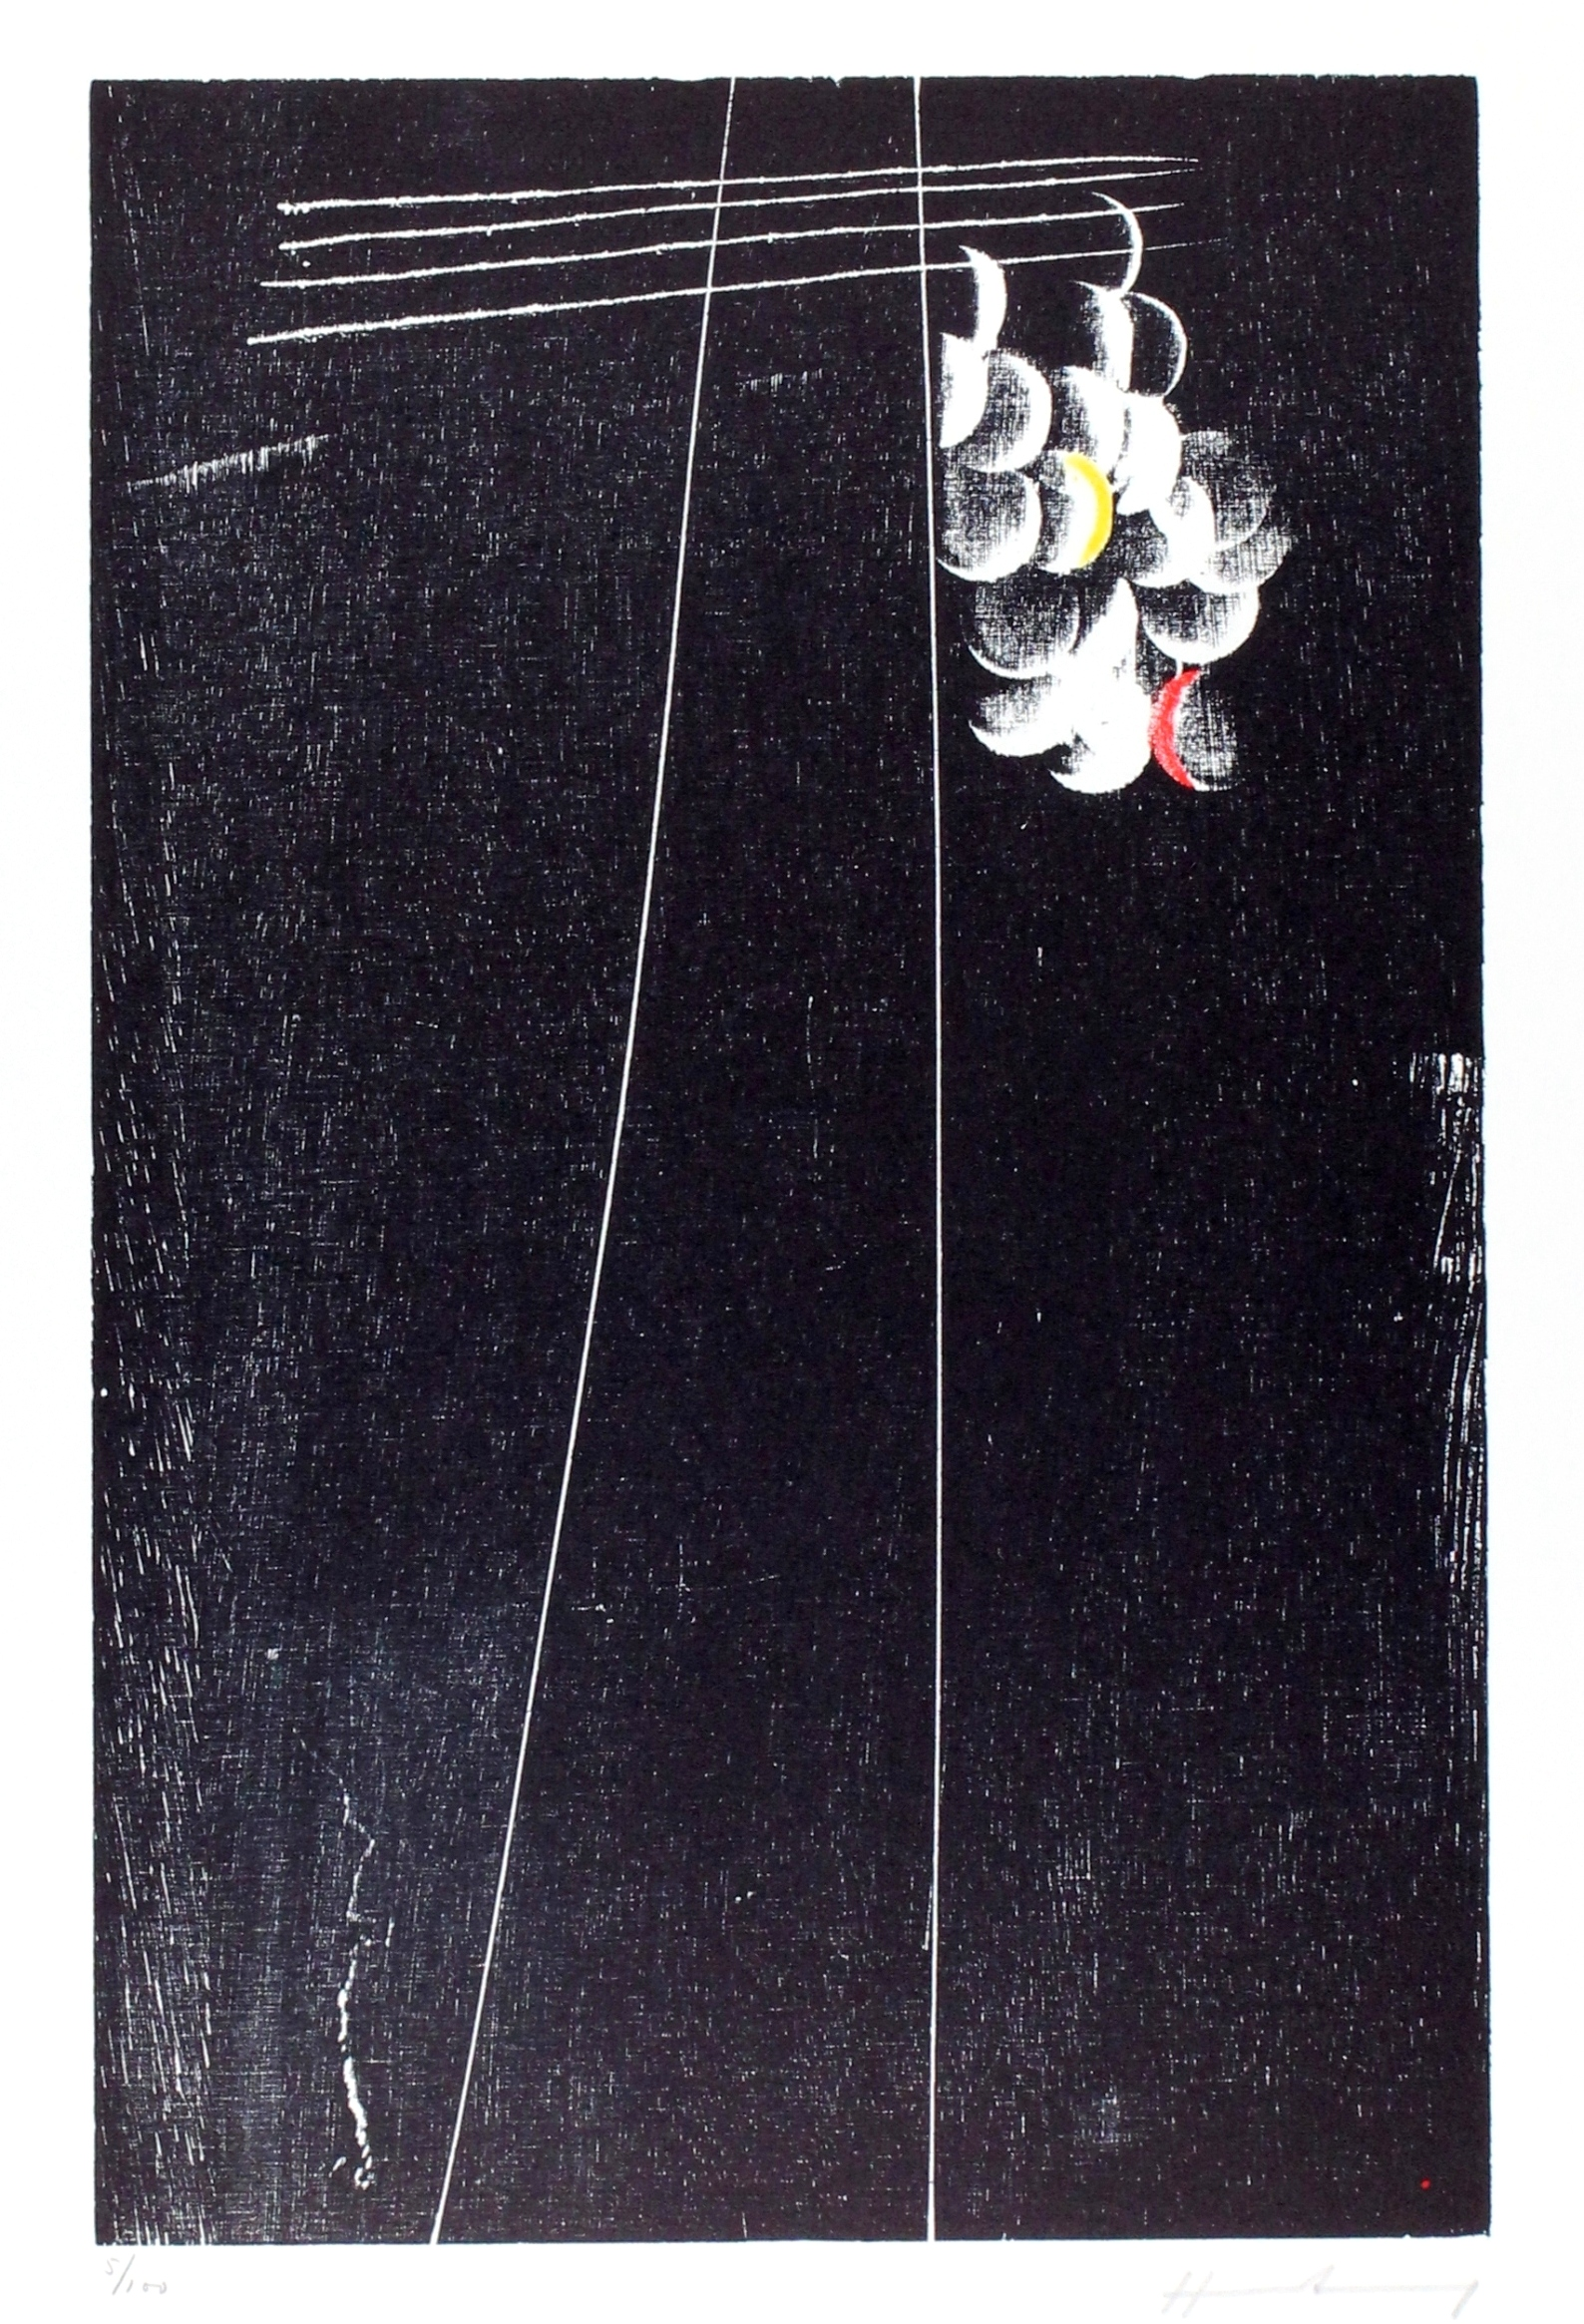 H-20-1973 by Hans Hartung